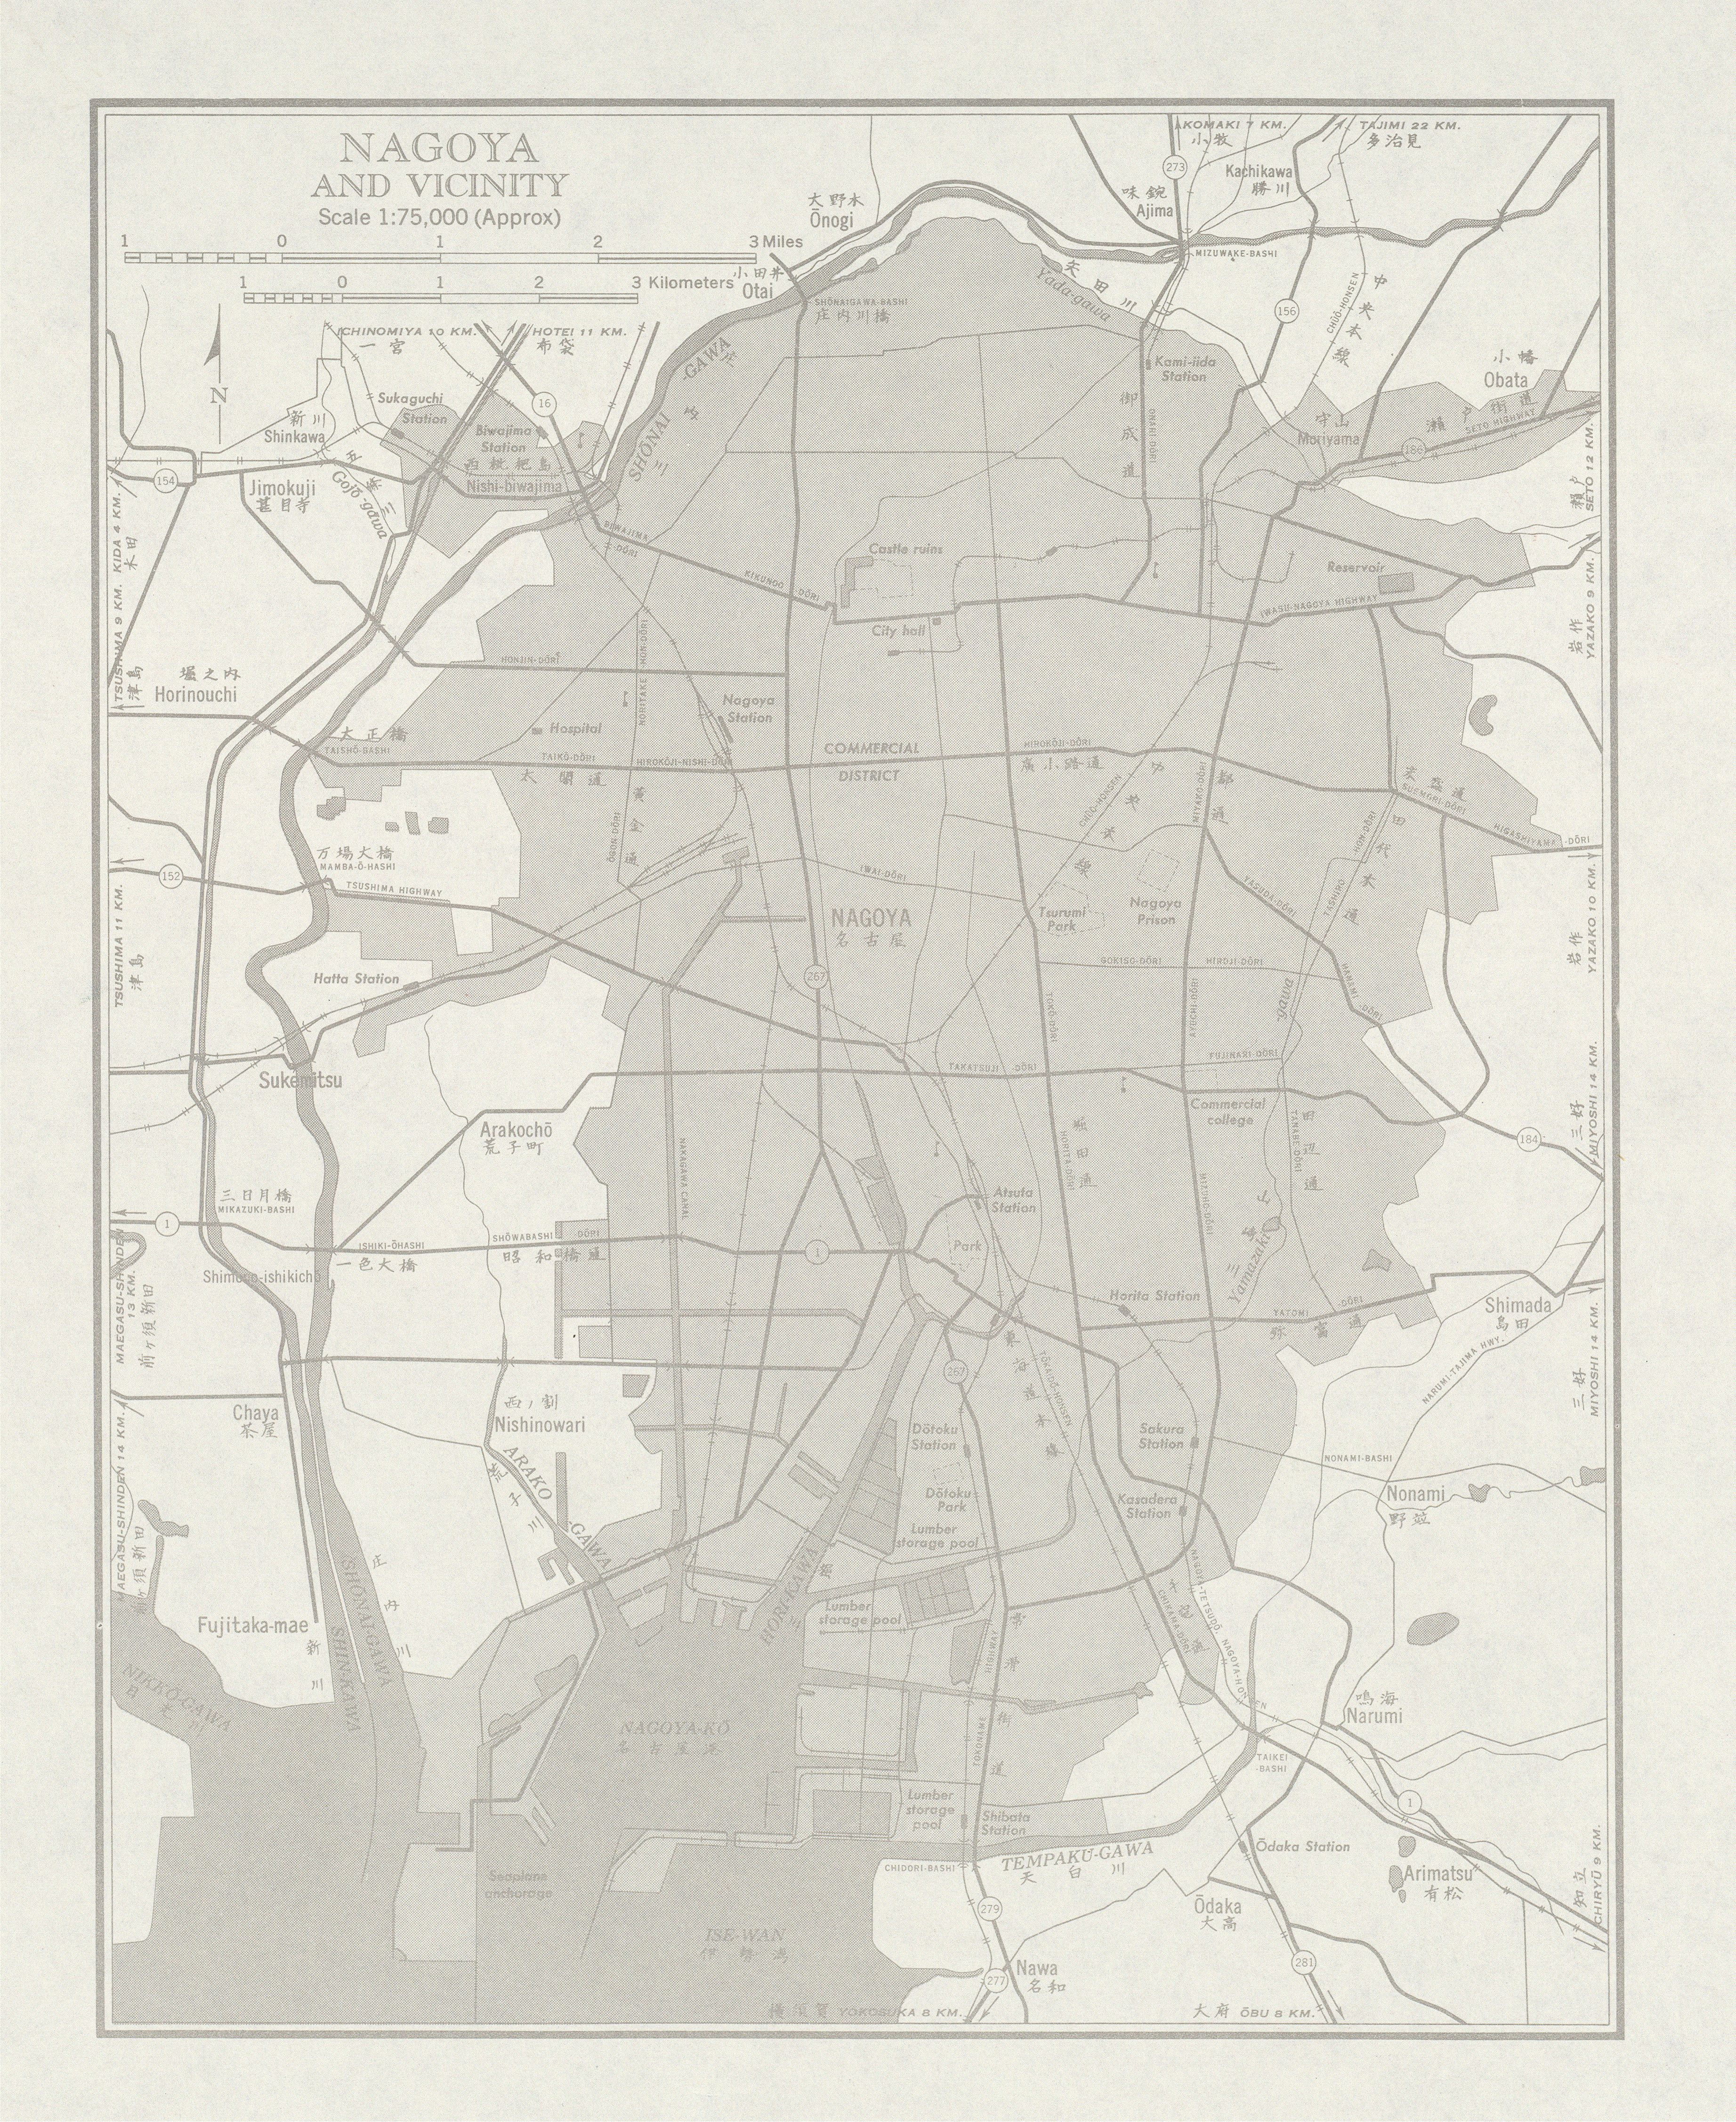 Map of Nagoya and Vicinity, Japan 1954